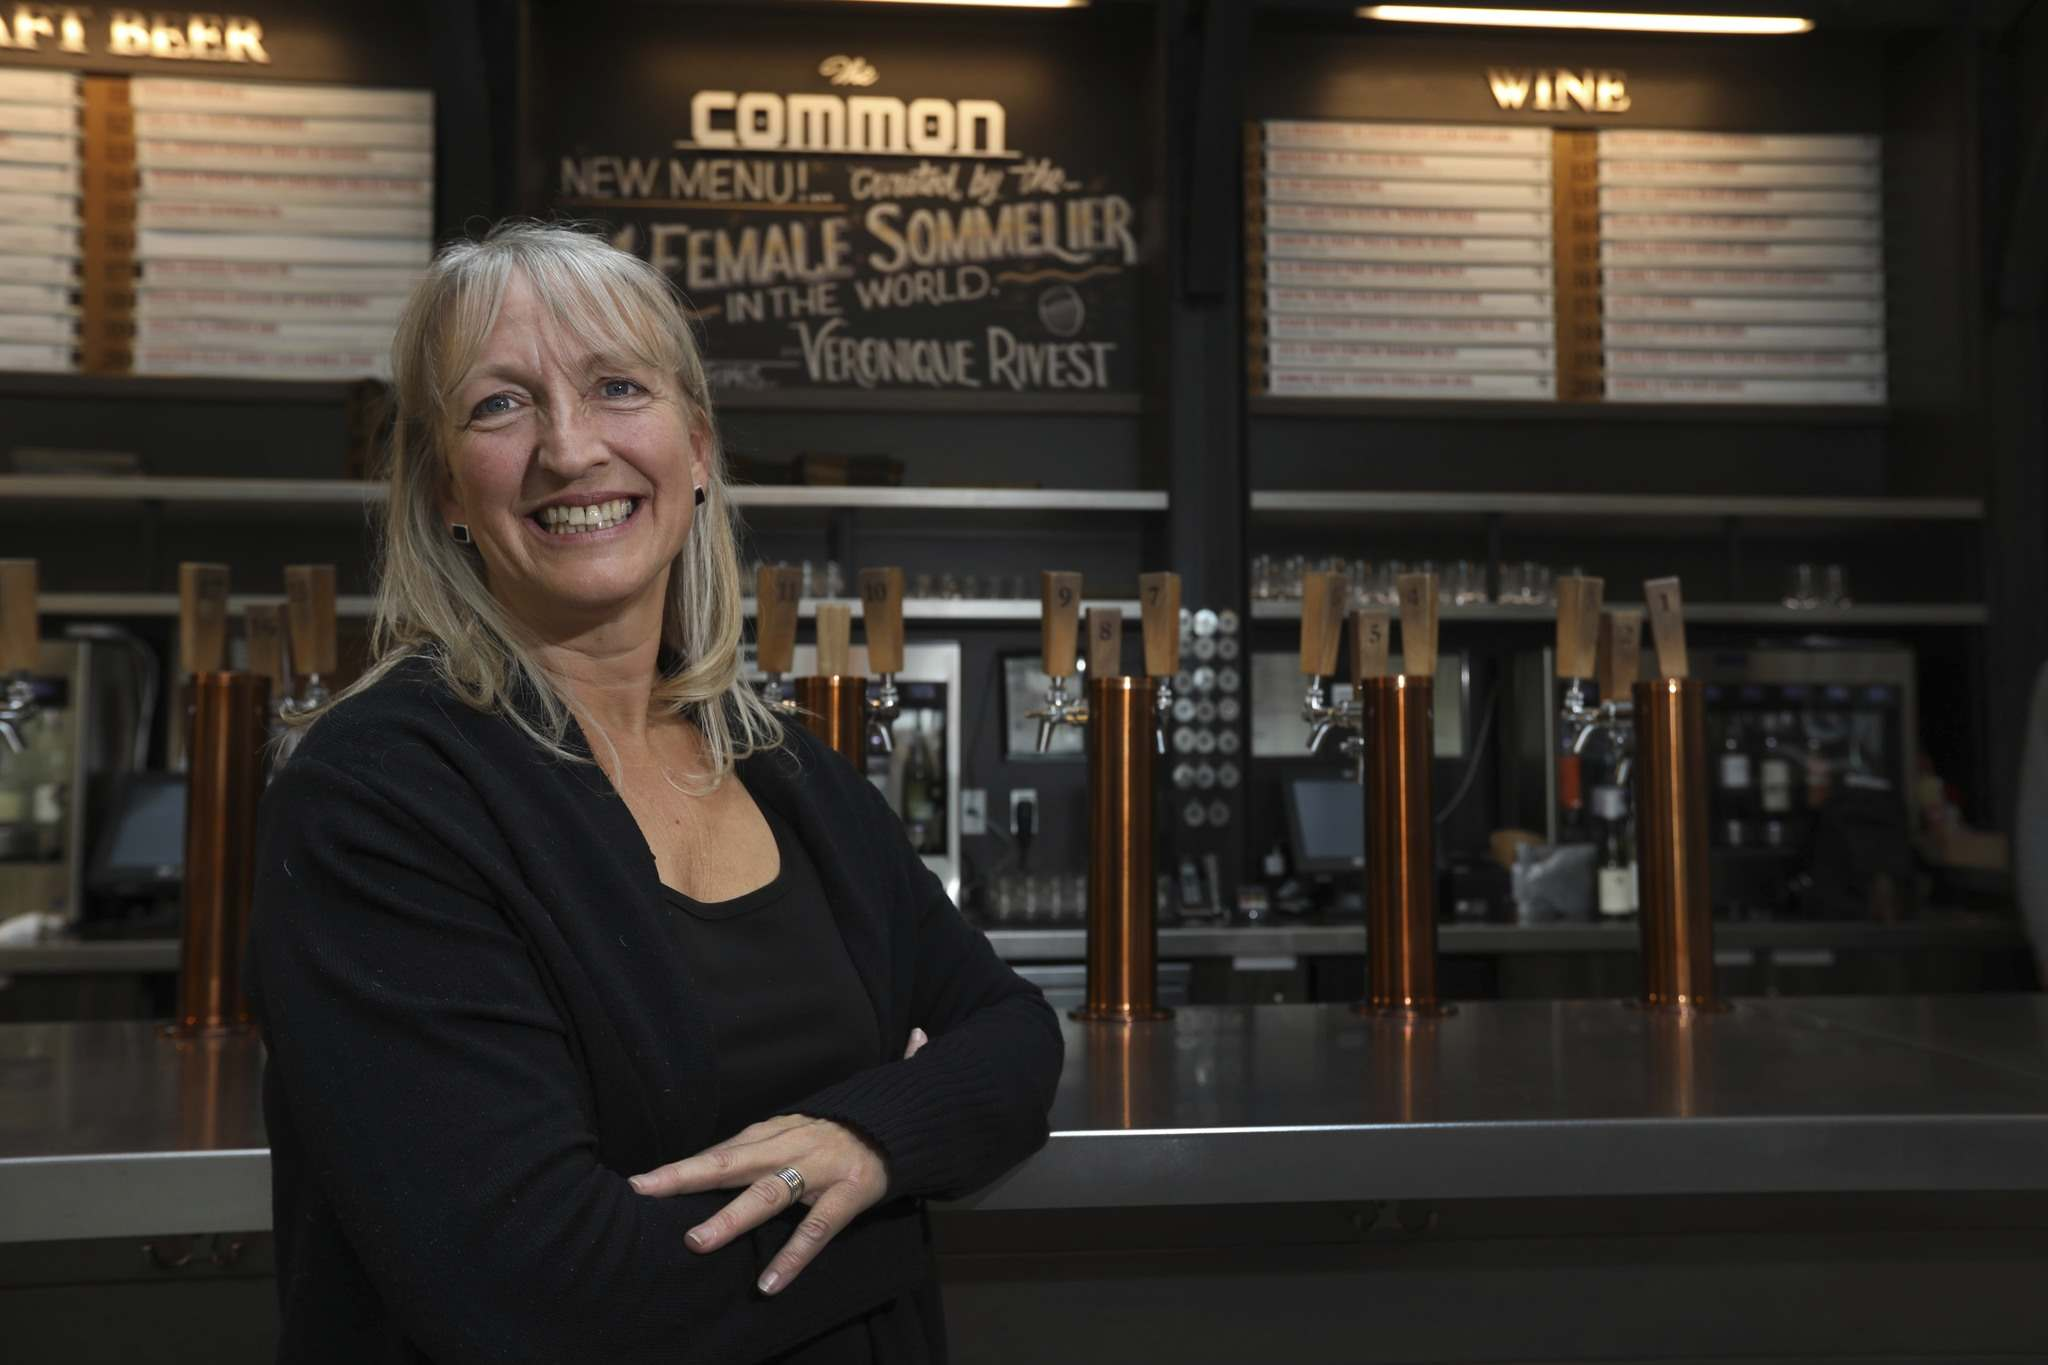 RUTH BONNEVILLE / WINNIPEG FREE PRESS</p><p>The Common's Véronique Rivest became one of the top sommelier's in the world while operating the Soif bar à vin in Gatineau, Que.</p>